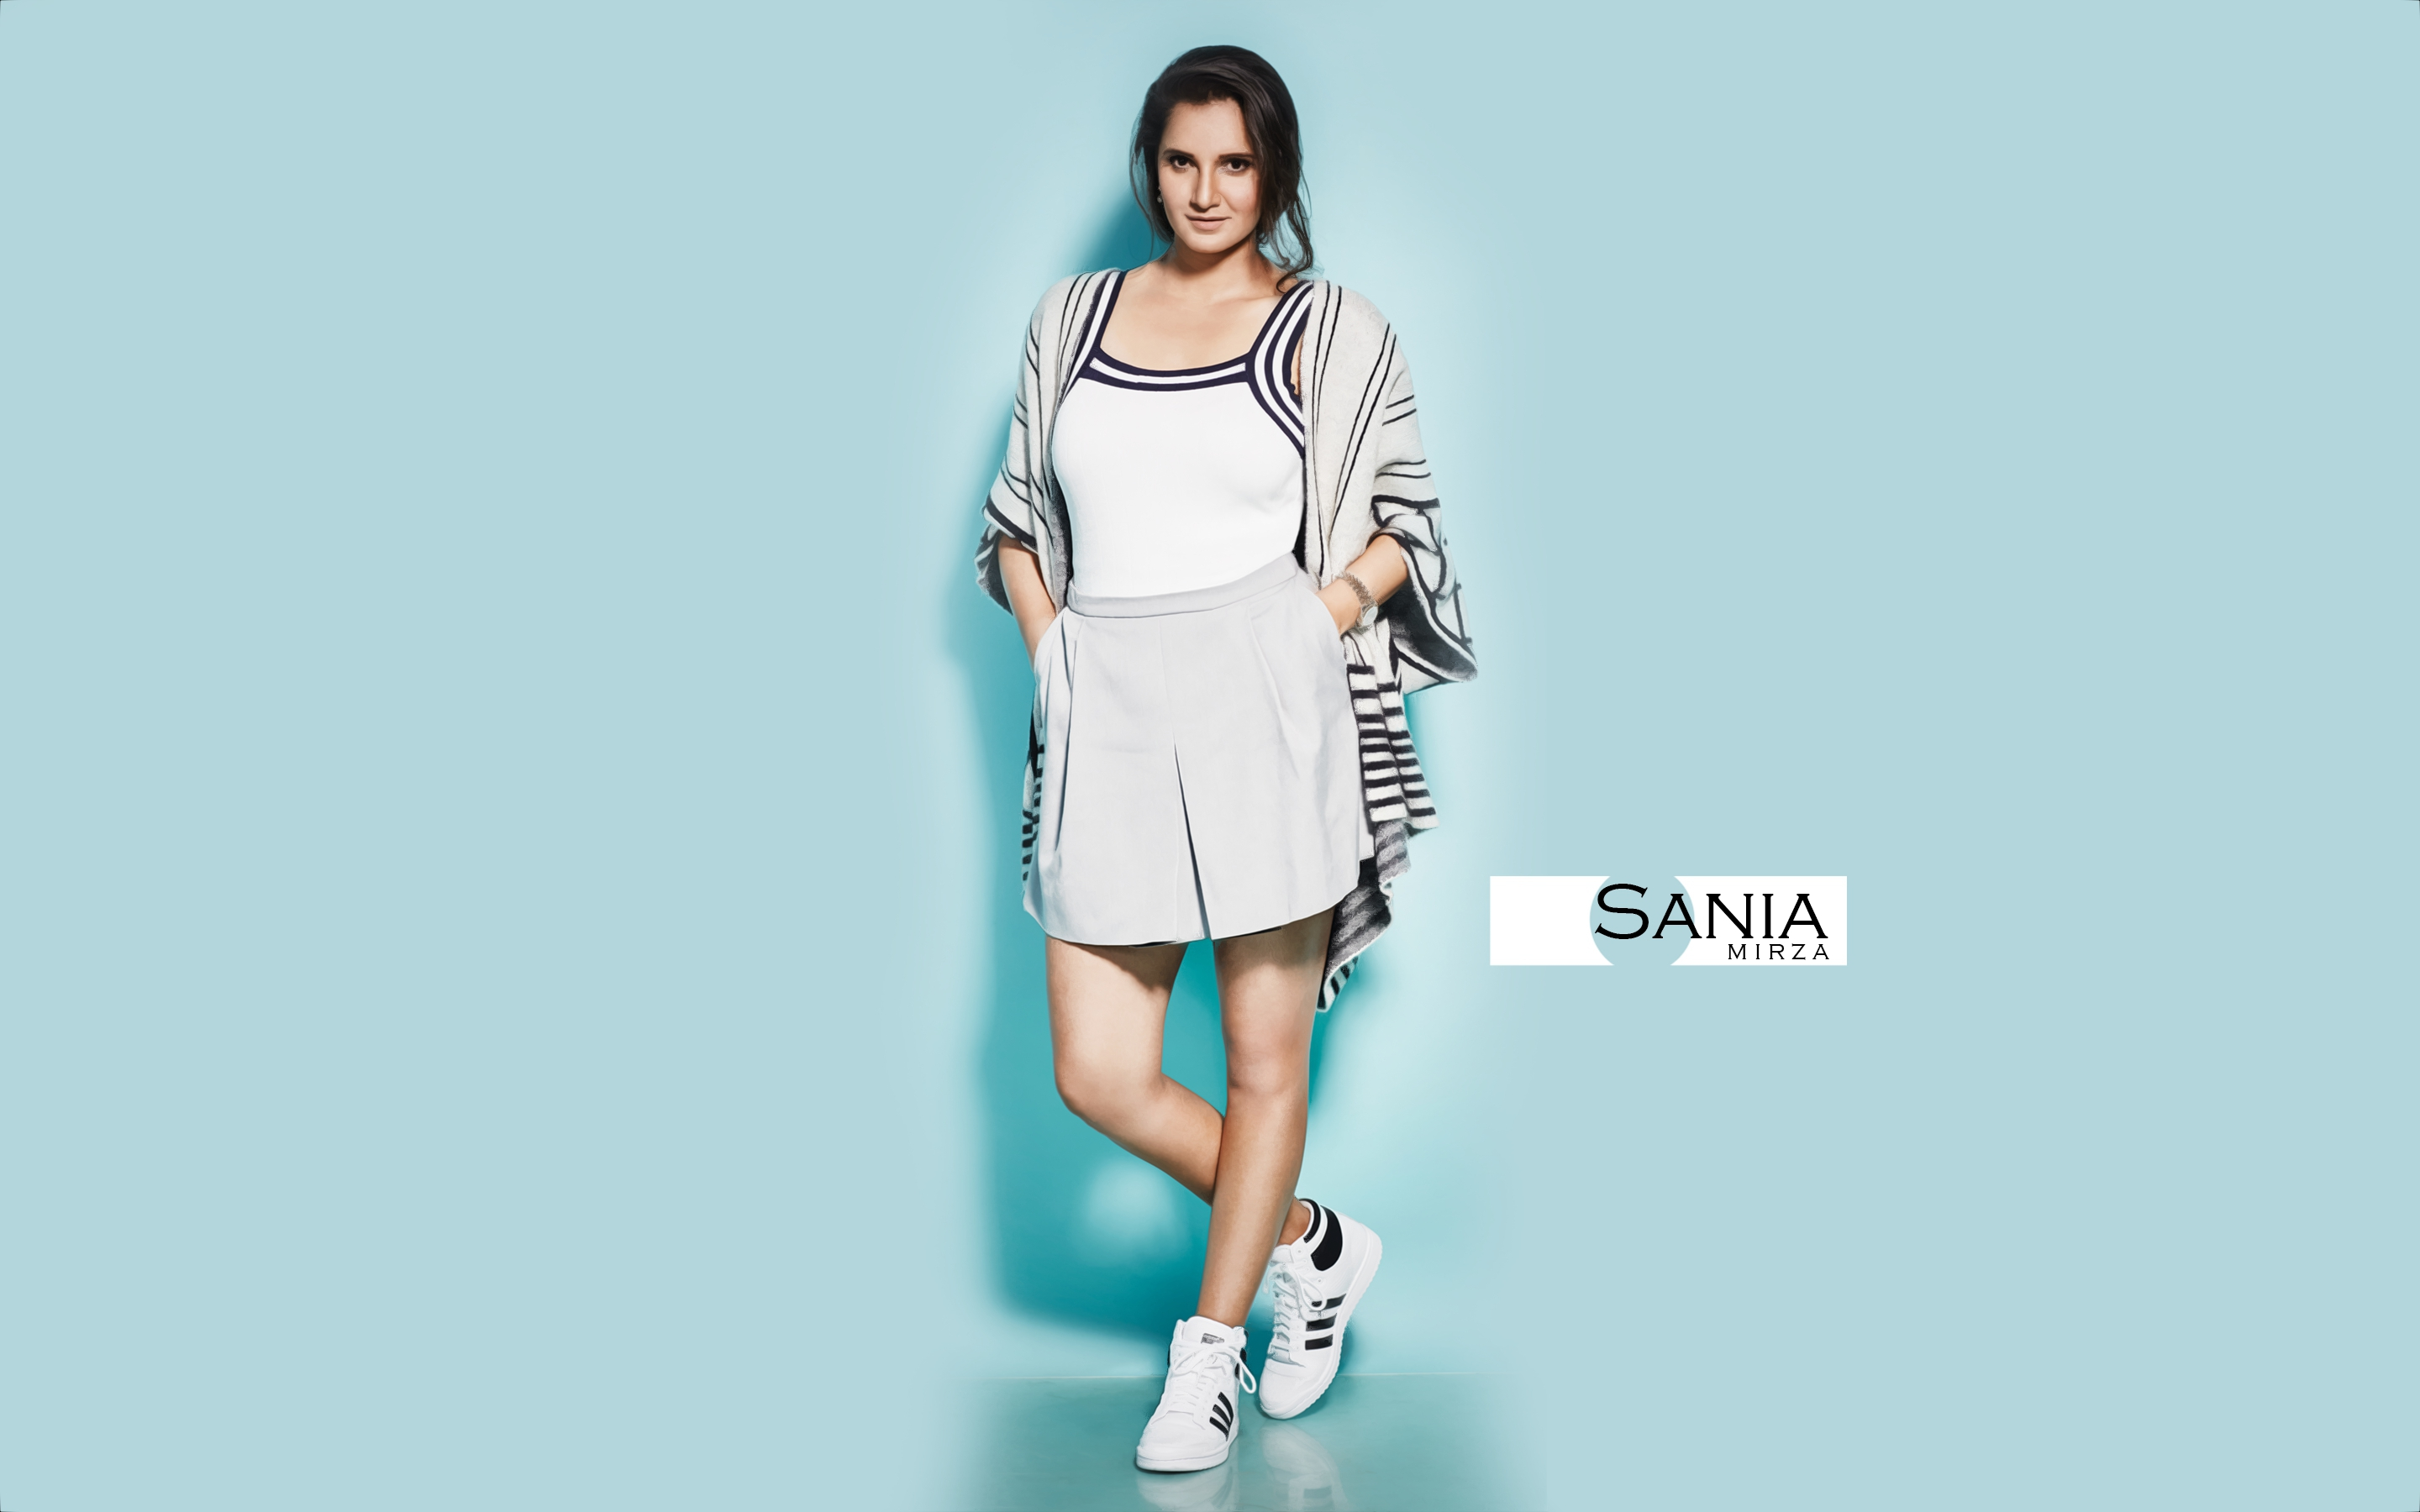 Sania Mirza Wallpapers Hd